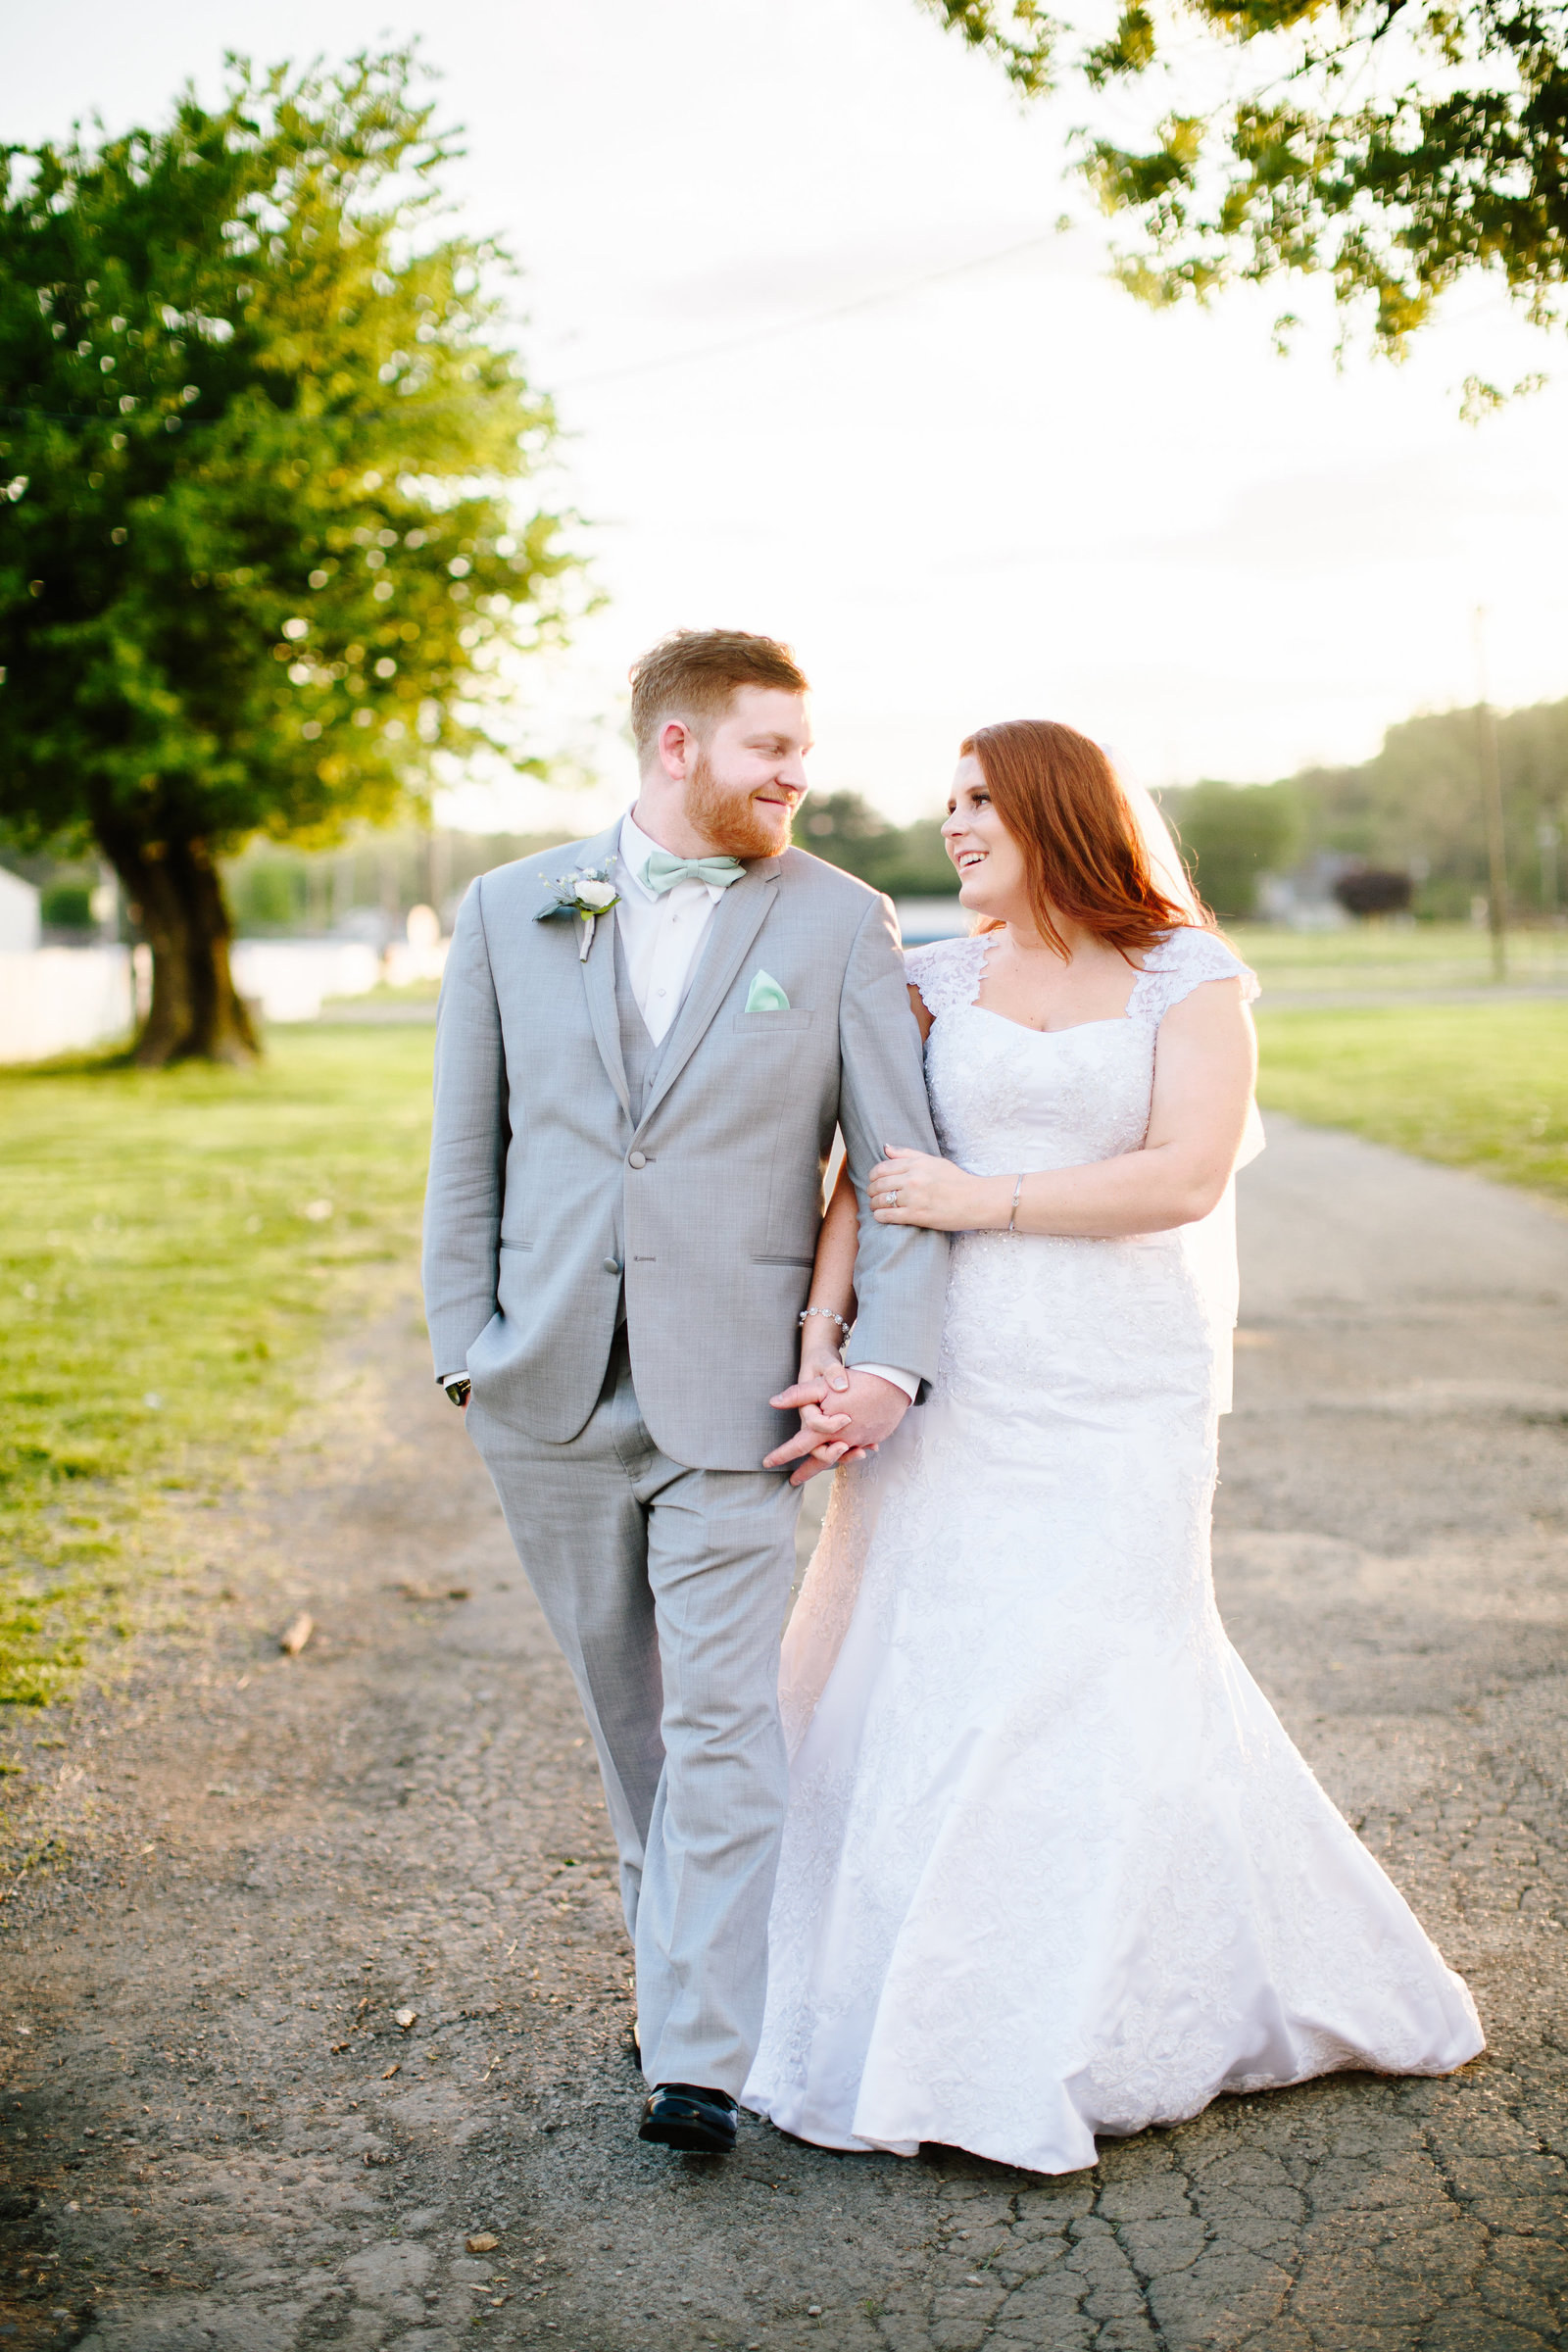 Zanesville Ohio wedding at the fairgrounds by Austin & Rachel Photography